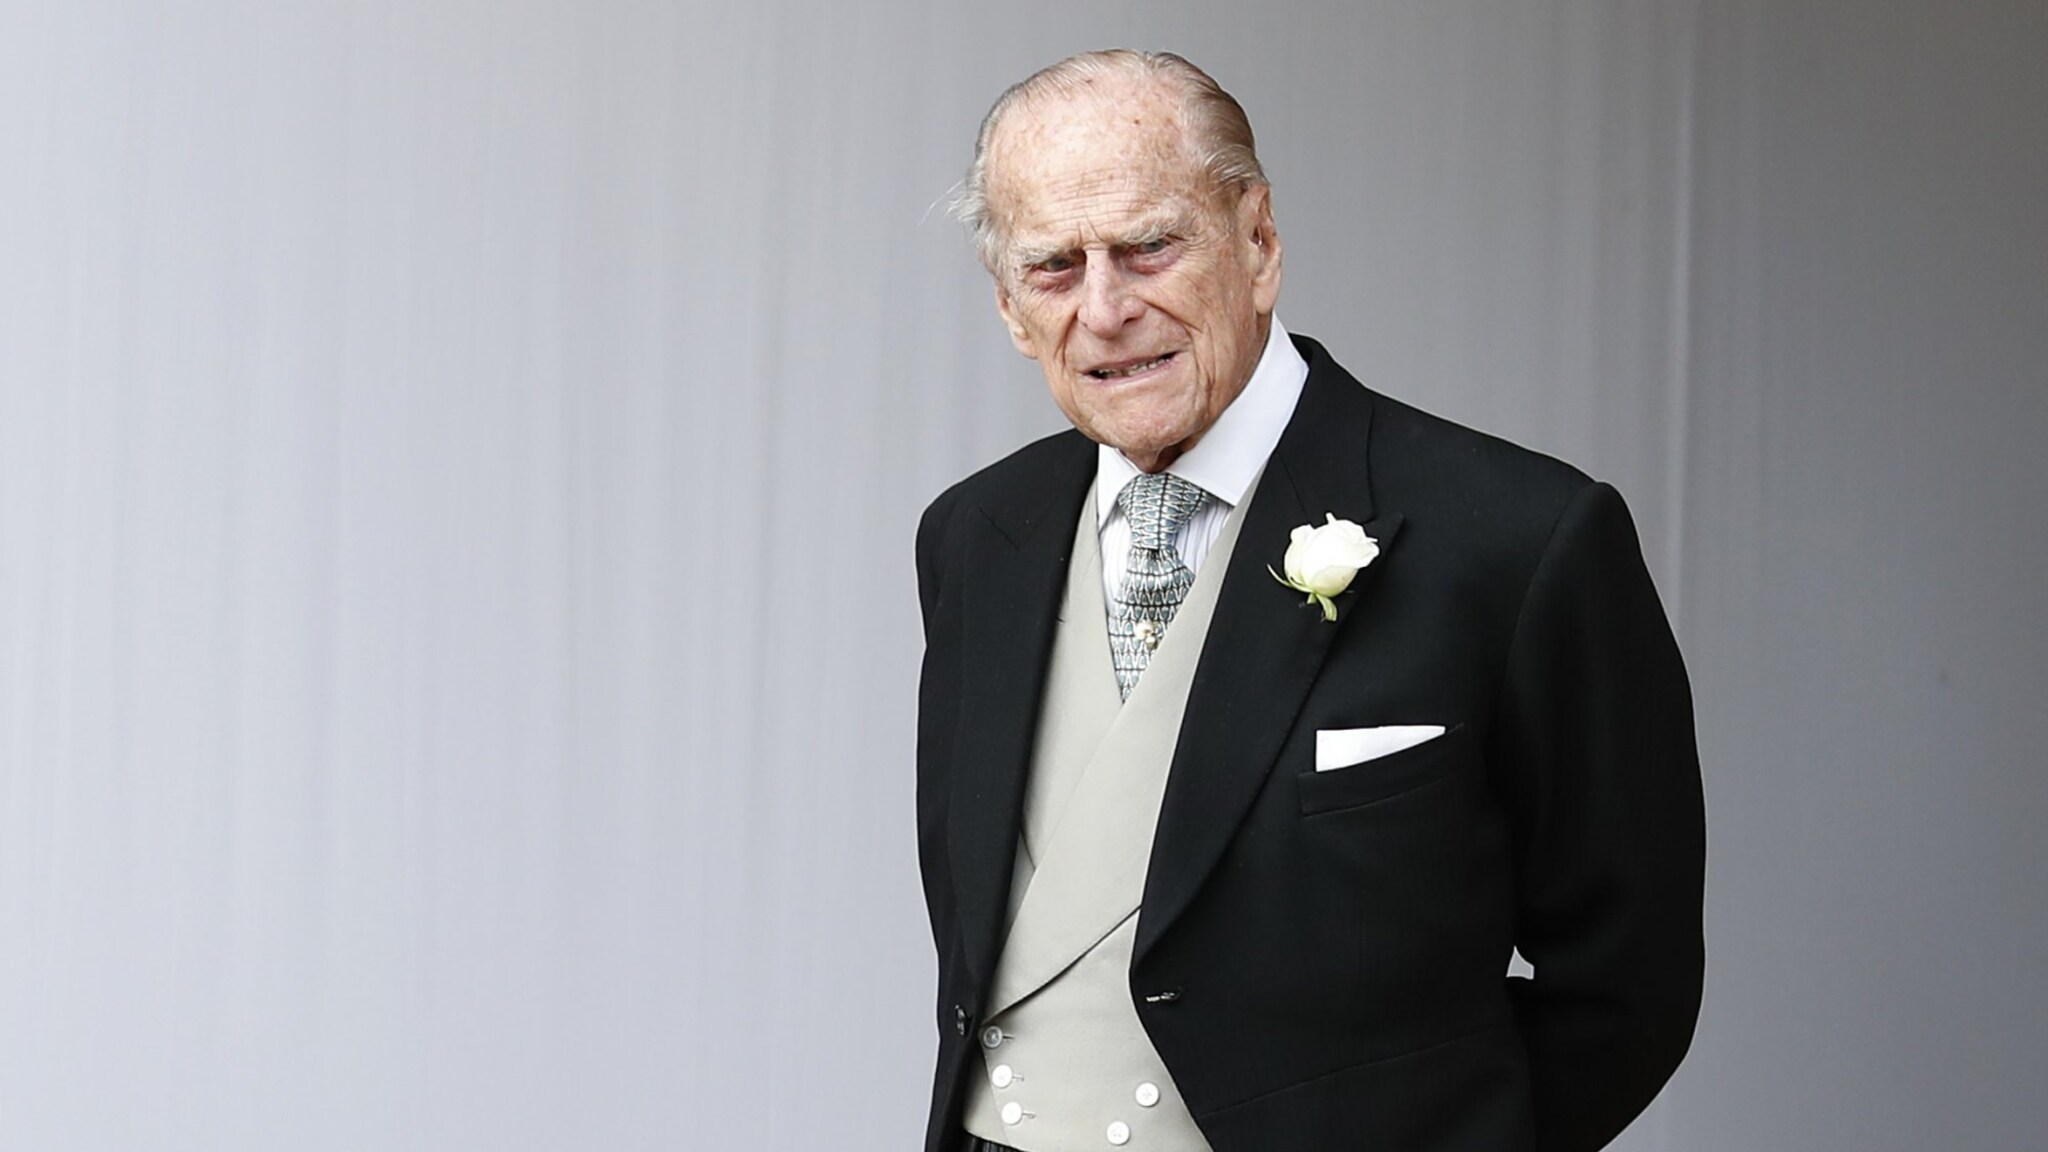 The royal family remembers Prince Philip as a great support